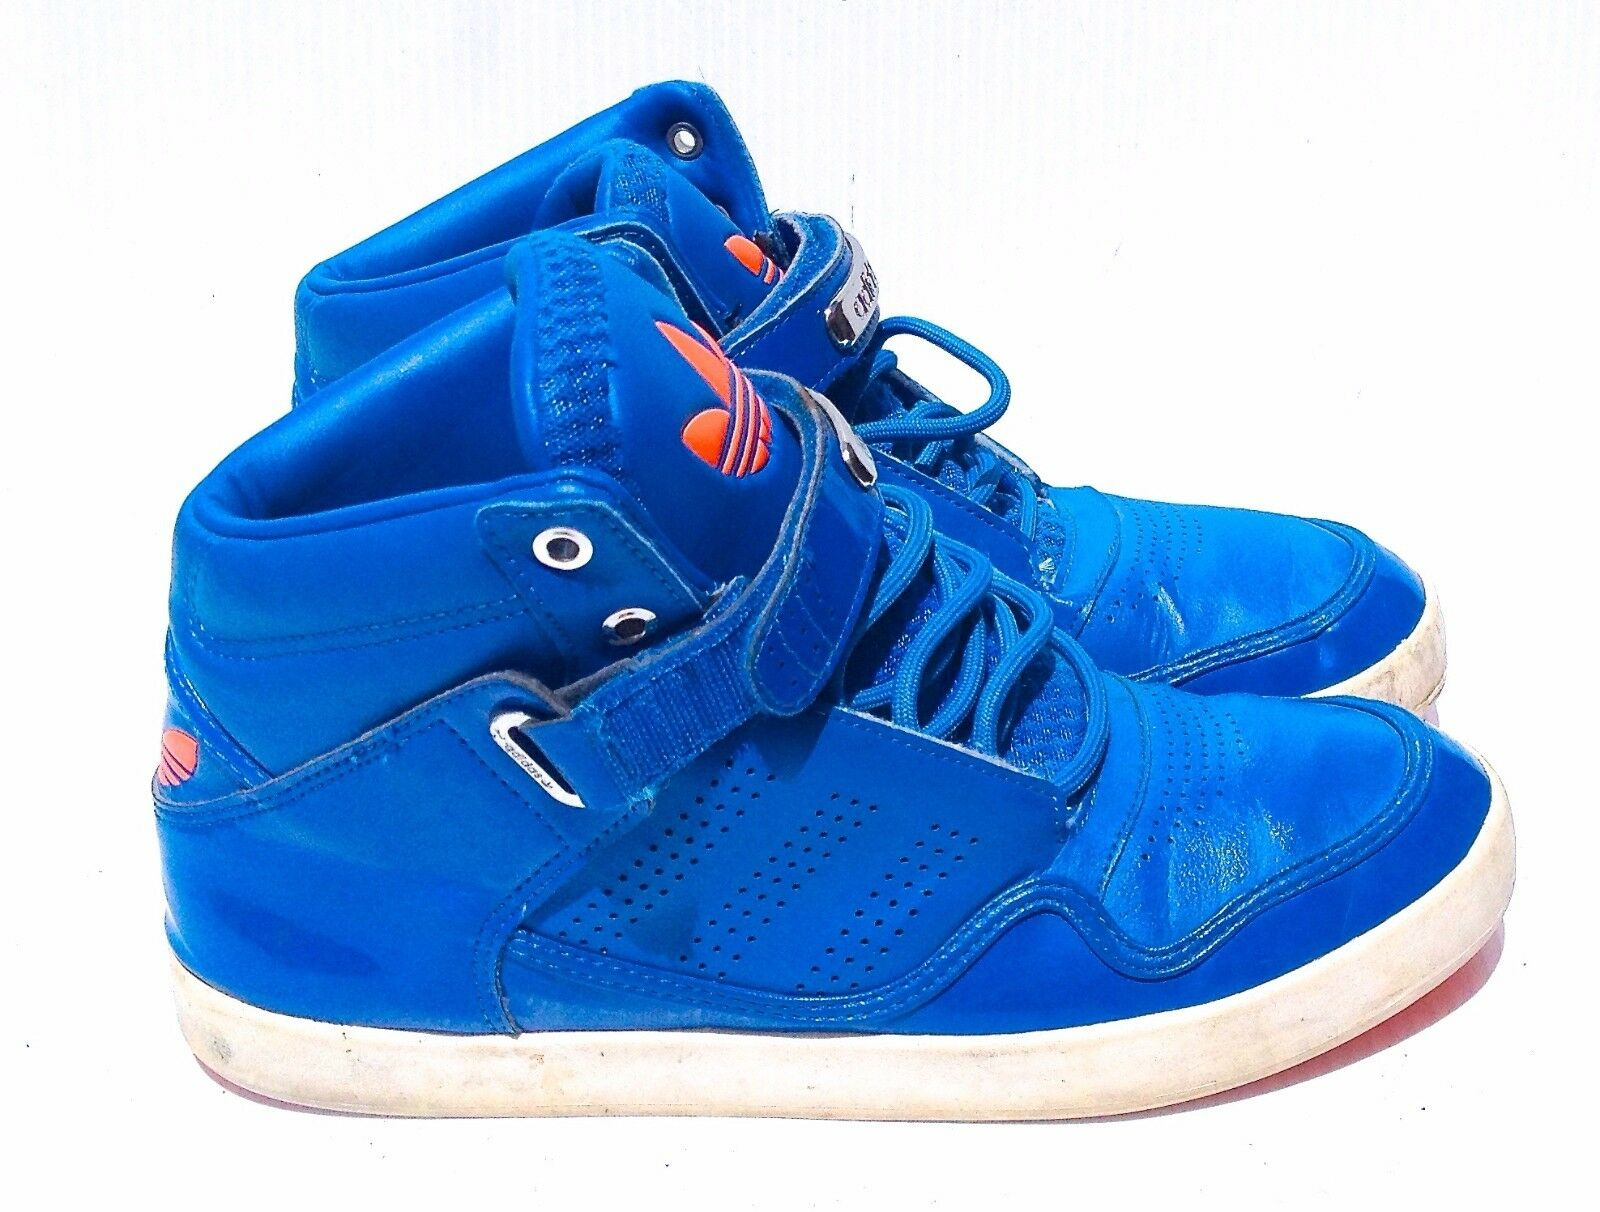 817f1d6b96267 ADIDAS ADIDAS ADIDAS MEN S BLUE BASKETBALL SHOES SZ 8 IN VERY GOOD+  CONDITION 024716